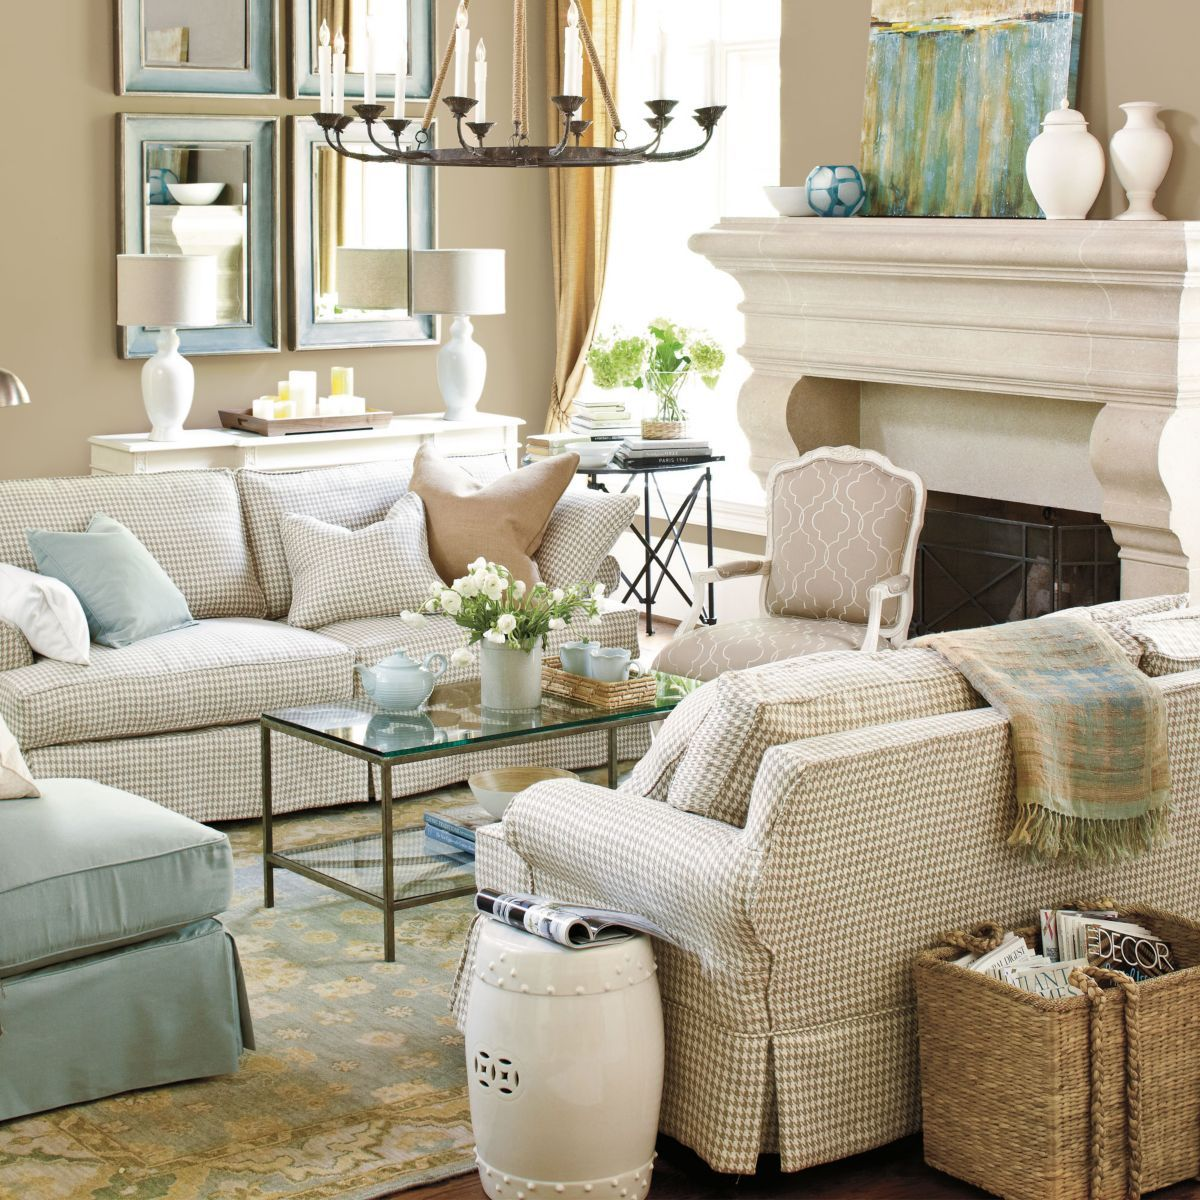 Take the plaid couches out, replace with same neutral colors and ...